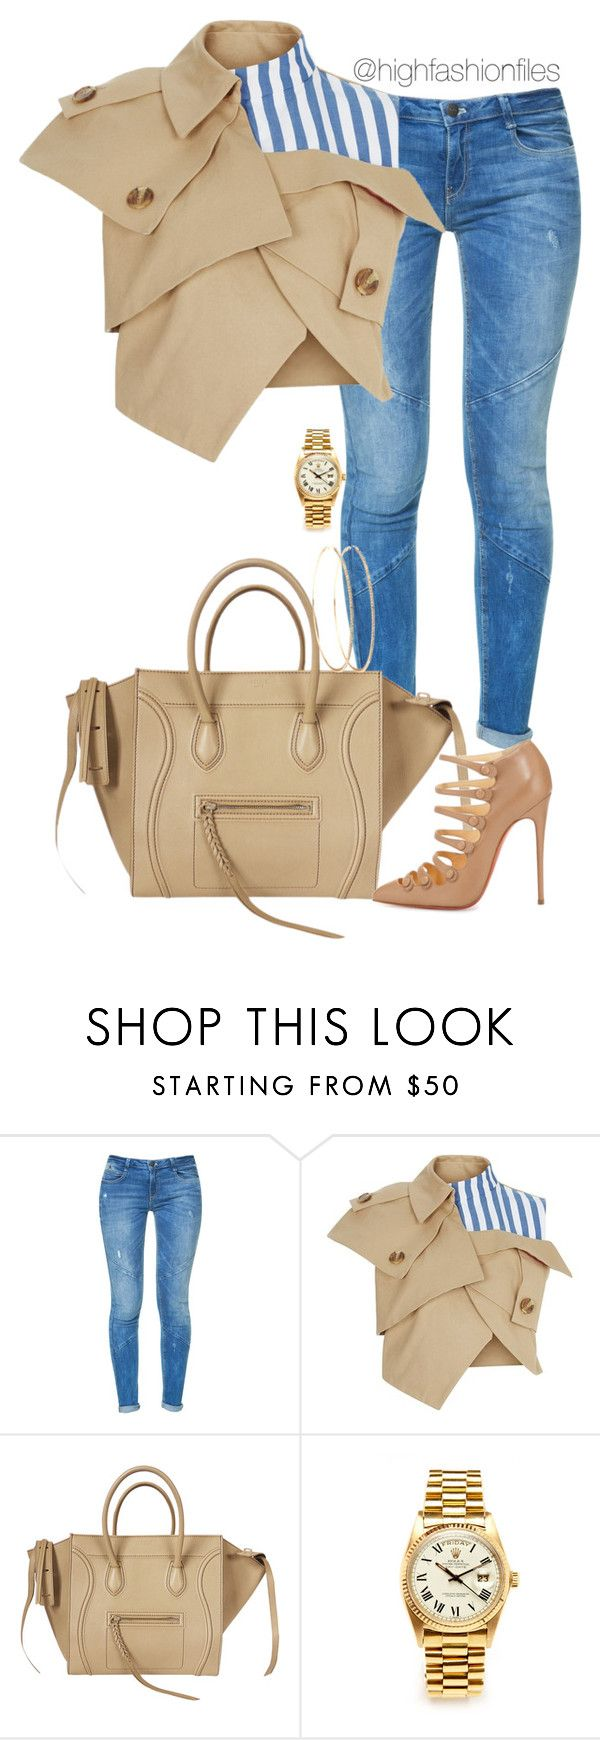 """""""Eiffel Tower"""" by highfashionfiles ❤ liked on Polyvore featuring Zara, A.W.A.K.E., CÉLINE and Rolex"""